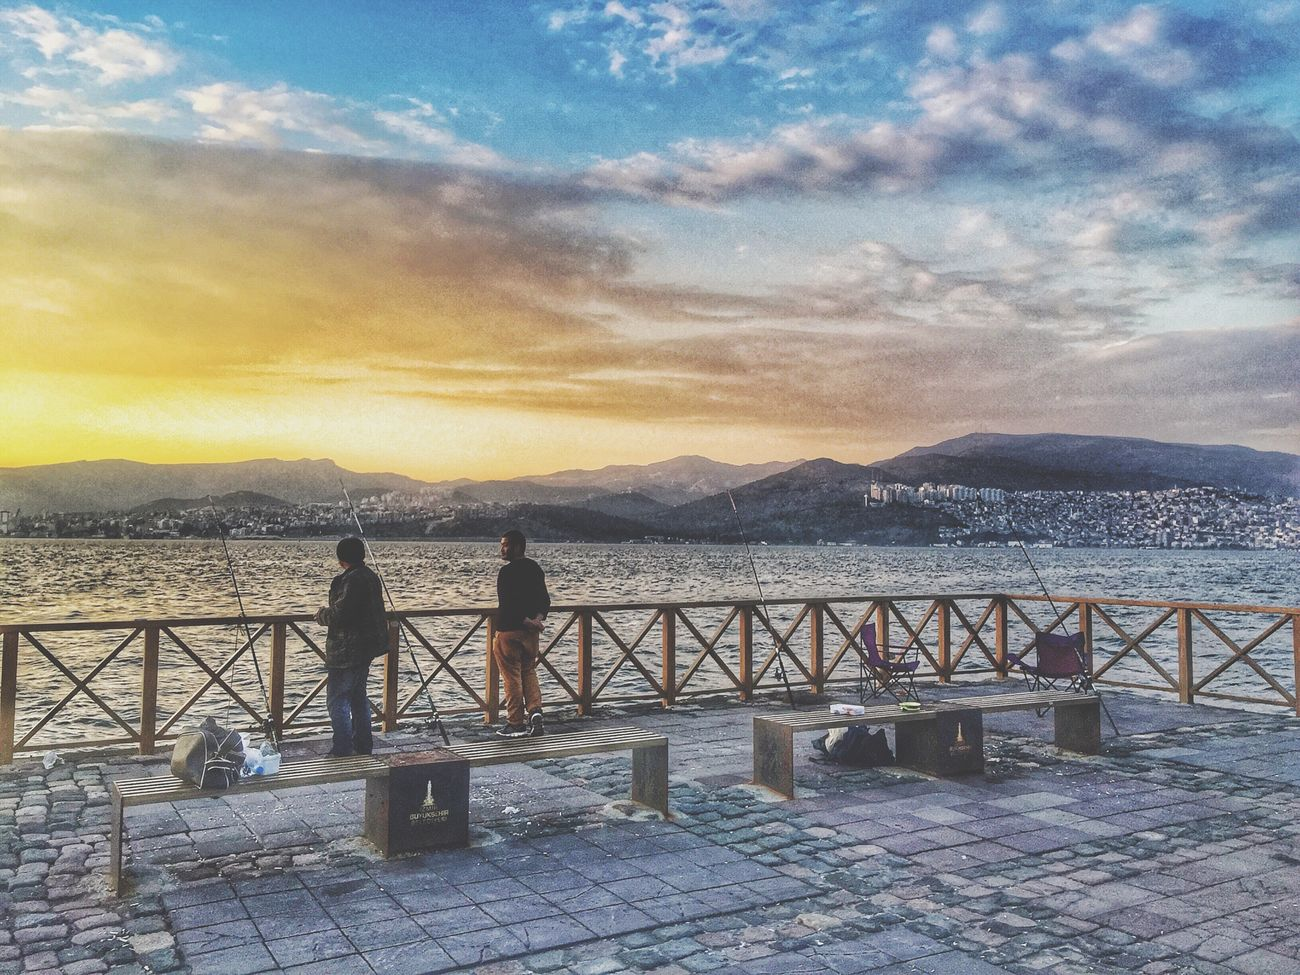 Photo Sunset Outdoors IPhoneography Geziyorum Gezmeler Streetphotography Fotografvakti Cloud - Sky Foto Fotography Fotografia Fotografheryerde Iphoneonly Izmir Izmirlife Izmirdeyasam Izmir Turkey Izmir ❤ Kordon Turkey Türkiye İzmir Alsancak 😊 Alsancak Alsancak Kordon